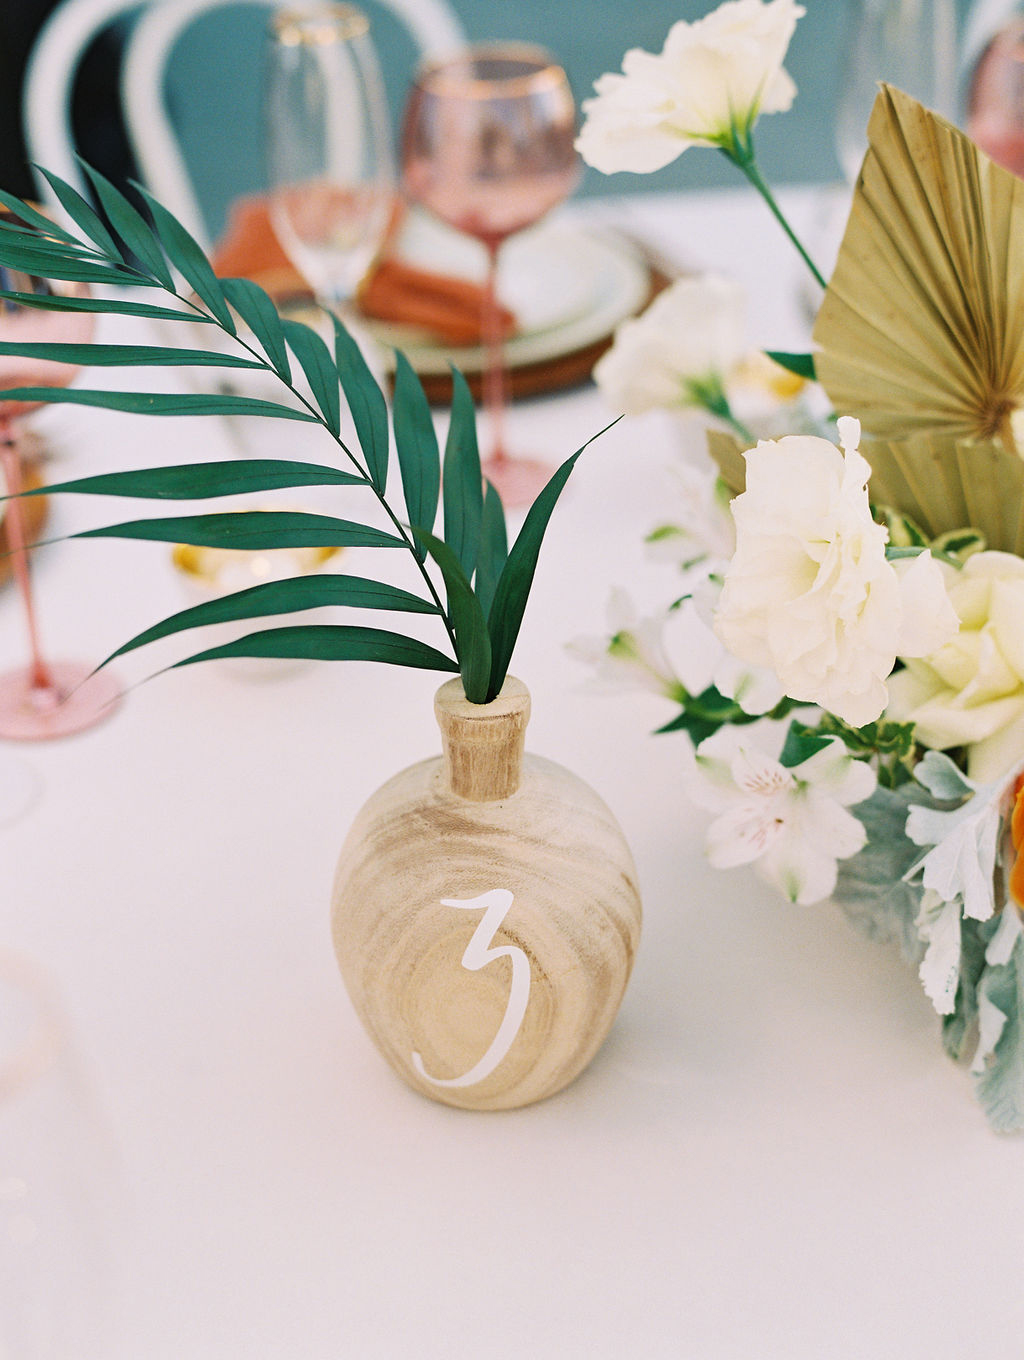 sara trisdan wedding wooden vase table number with greenery